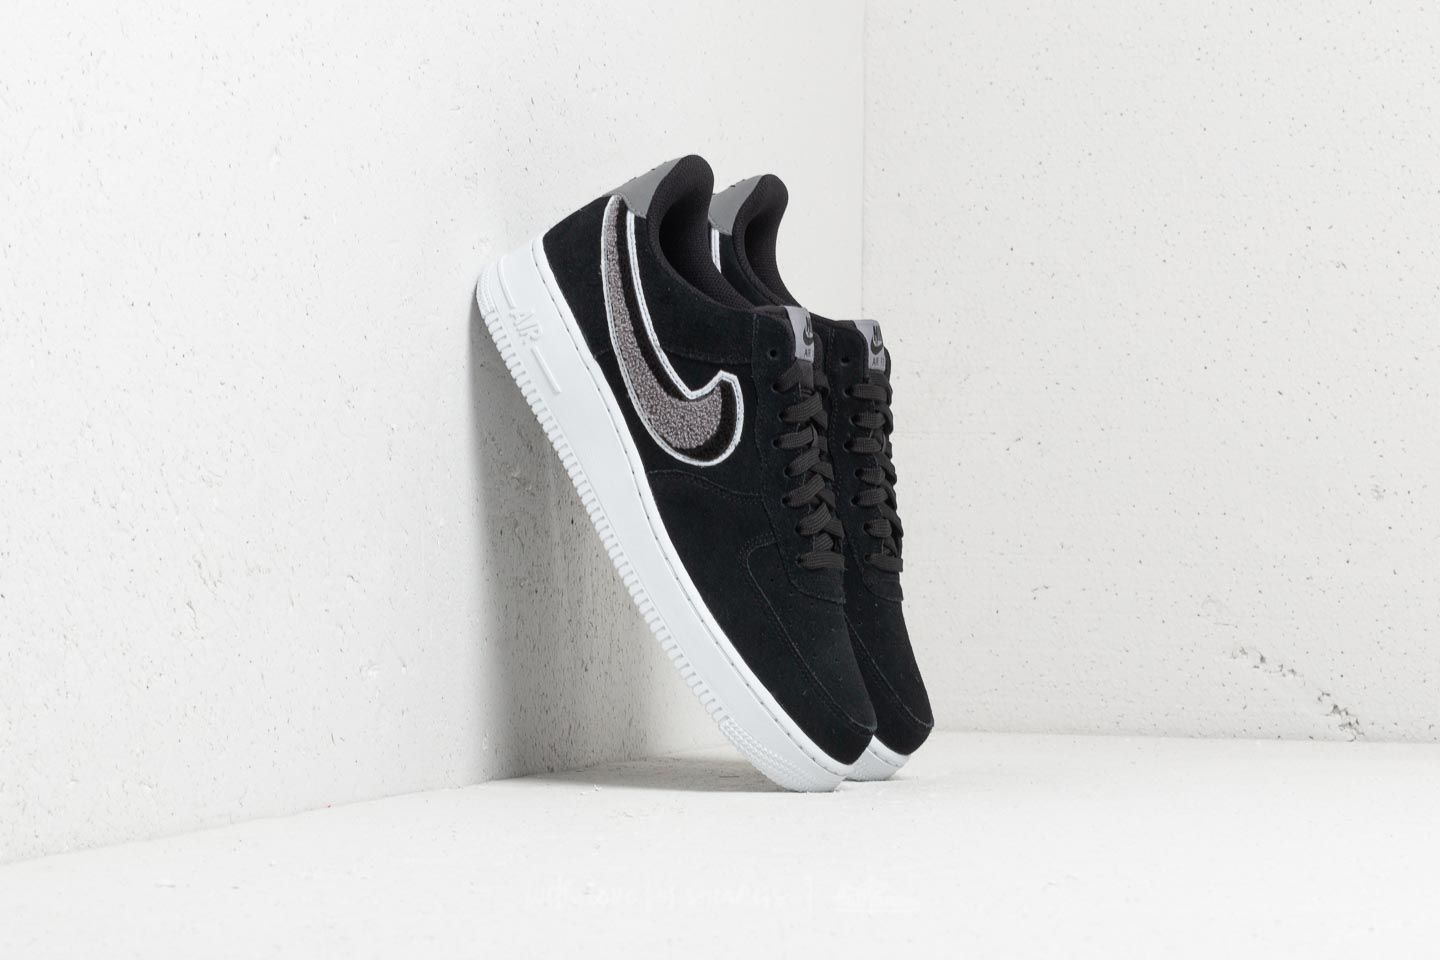 Nike Air Force 1 '07 Black Black White | Footshop